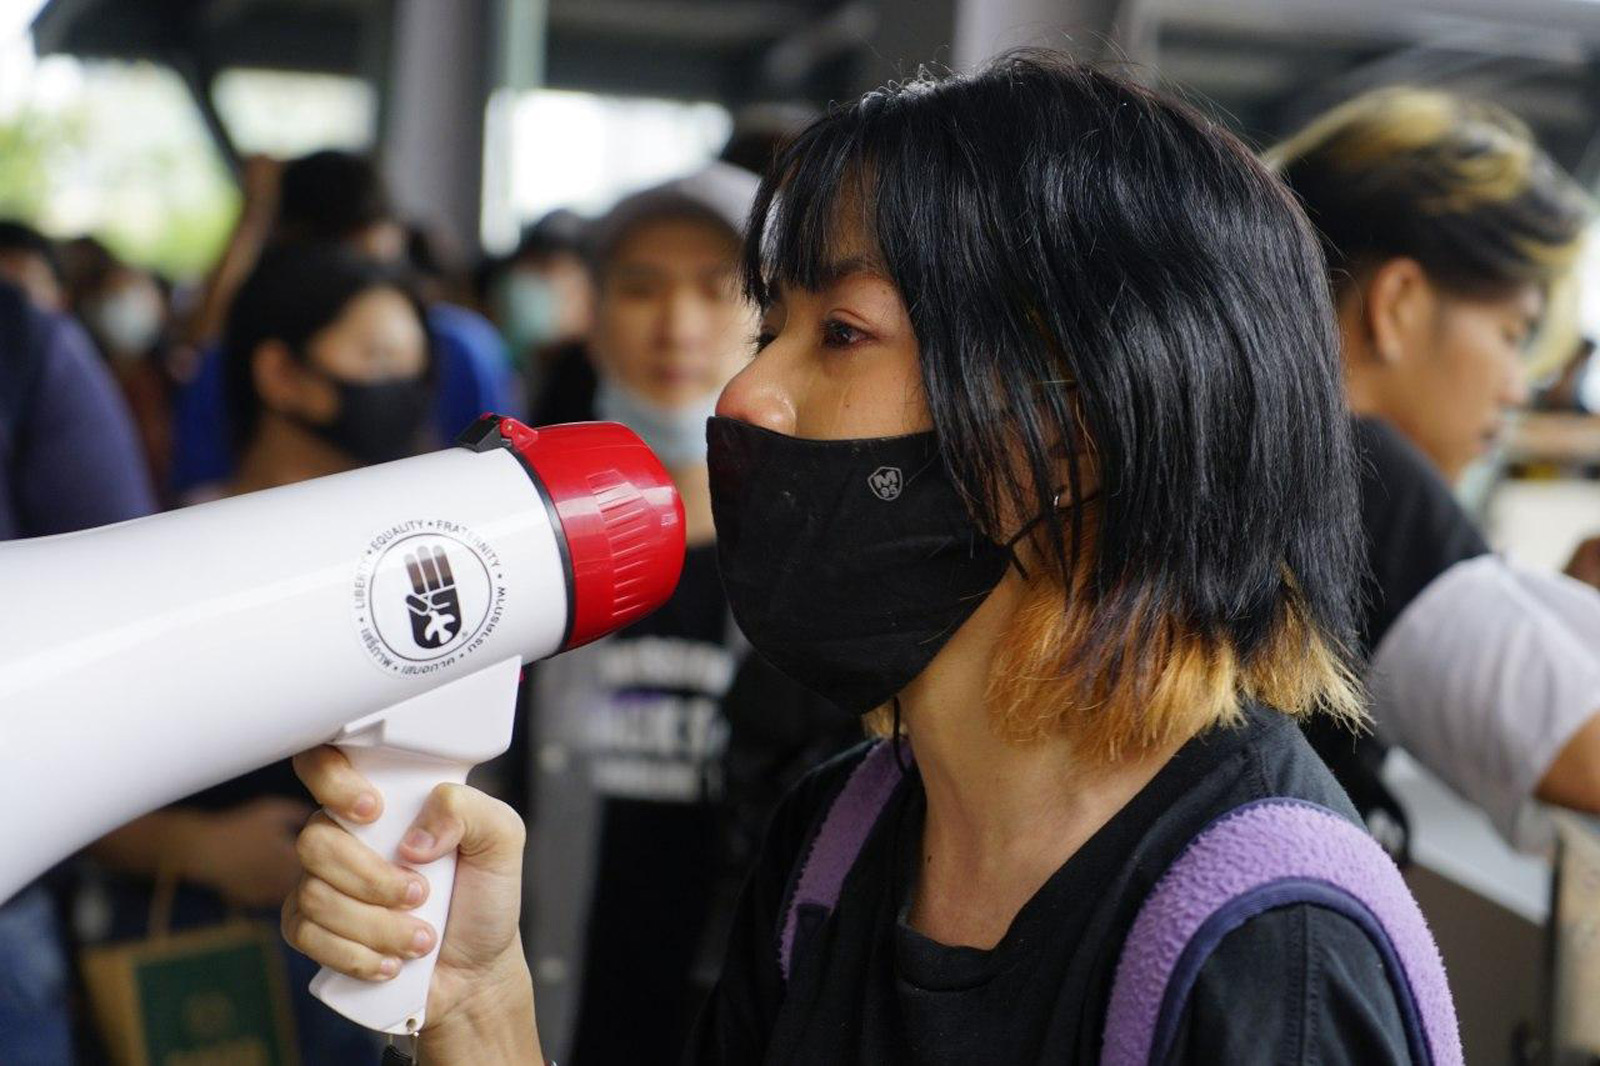 A protestor uses a megaphone during a flash mob at Lad Phrao intersection in Bangkok on 17 October 2020.